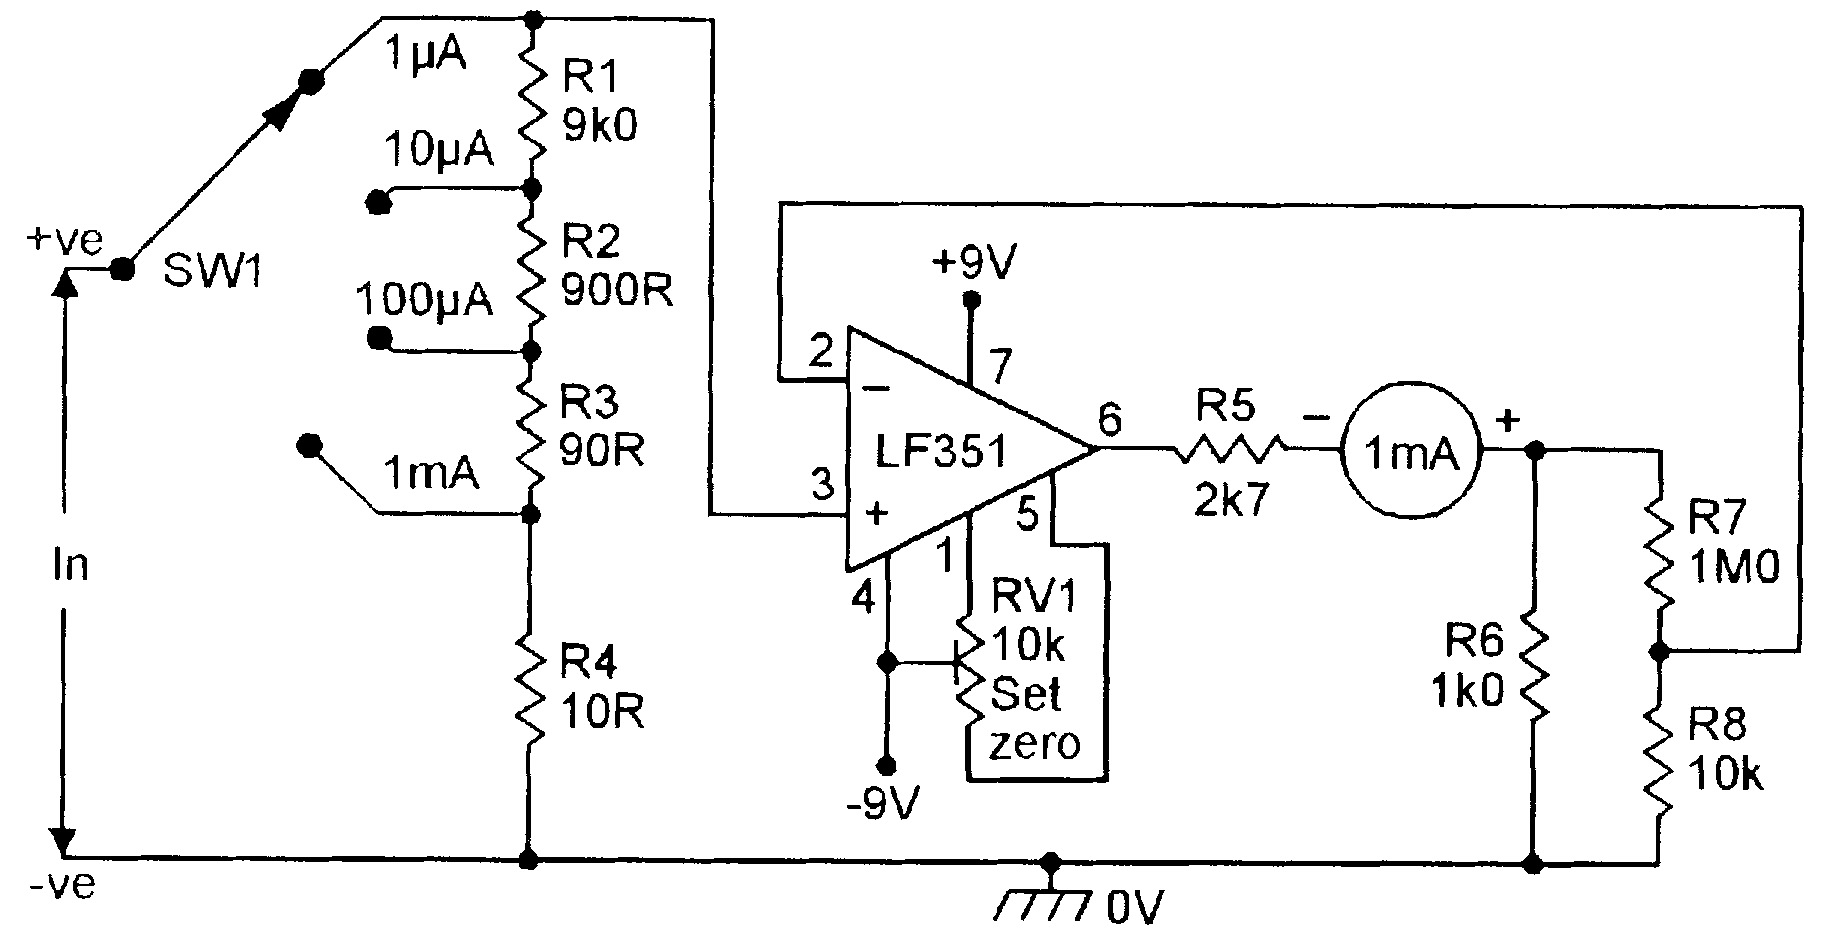 File The  puter tree U S  Army diagram furthermore 426153183471848262 likewise Rs Flipflop Truthtable For Q 1 And Q 0 furthermore Pinouts additionally 3 Way Lighting Circuit. on circuit diagram